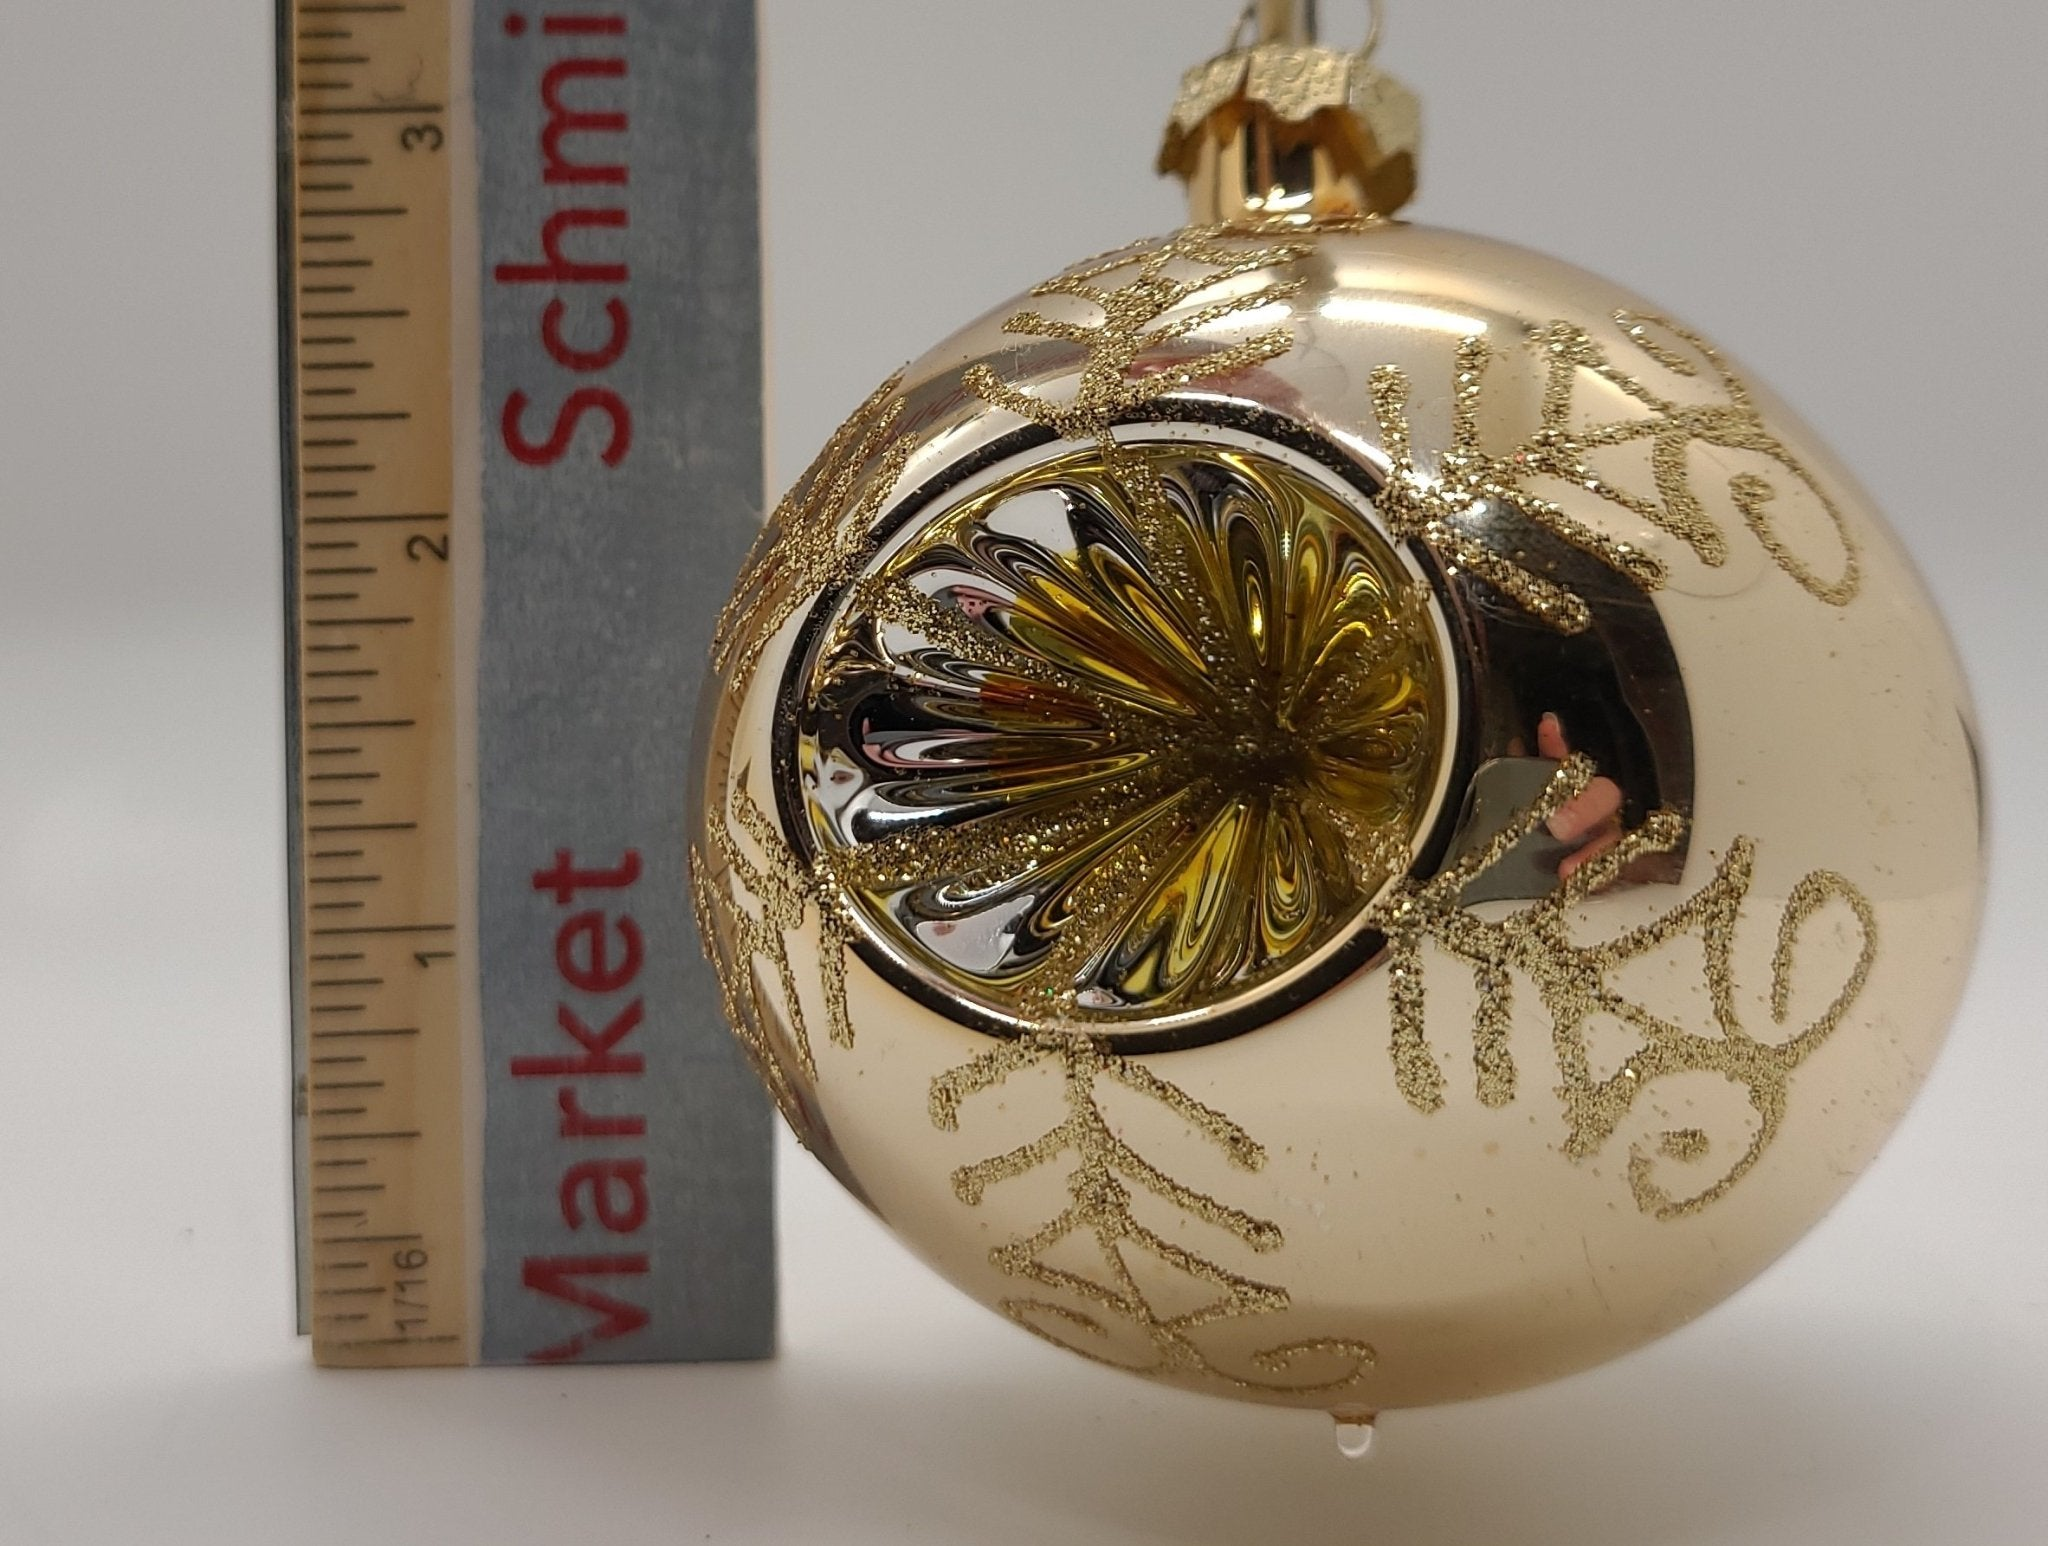 """Aztec Gold 2 5/8 """"Round Reflector with Gold Crown Caps Ornament - Schmidt Christmas Market Christmas Decoration"""